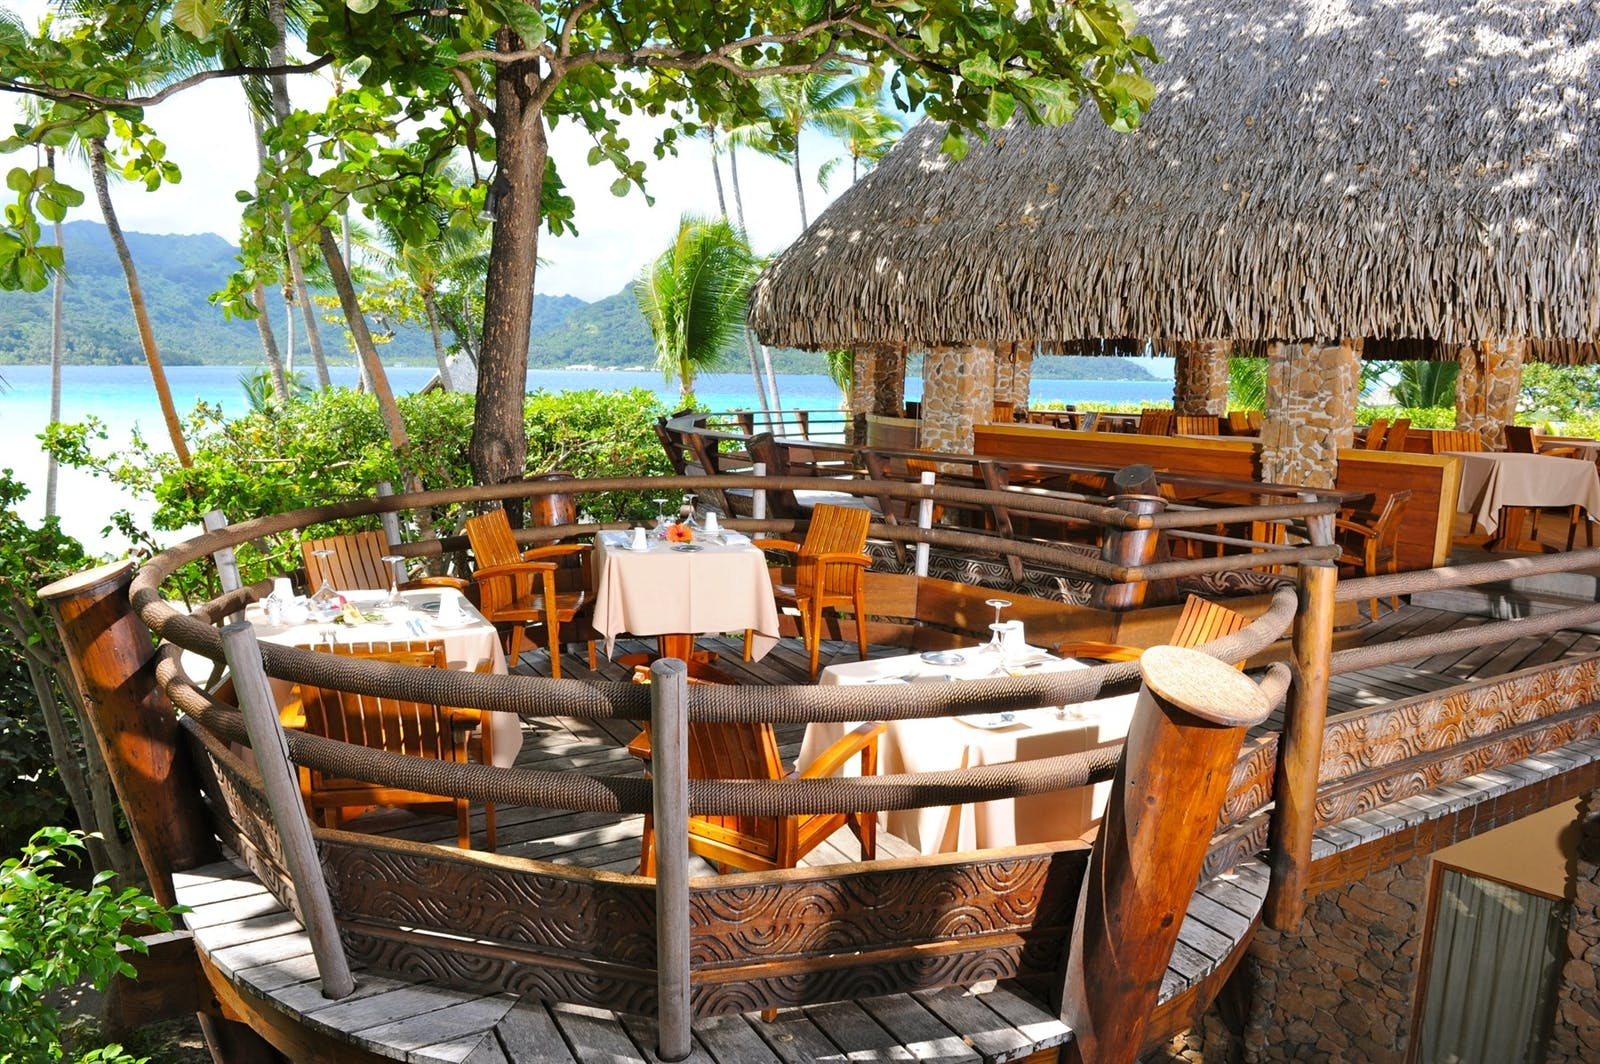 Restaurant at Le Taha'a Island Resort & Spa, Tahiti, French Polynesia